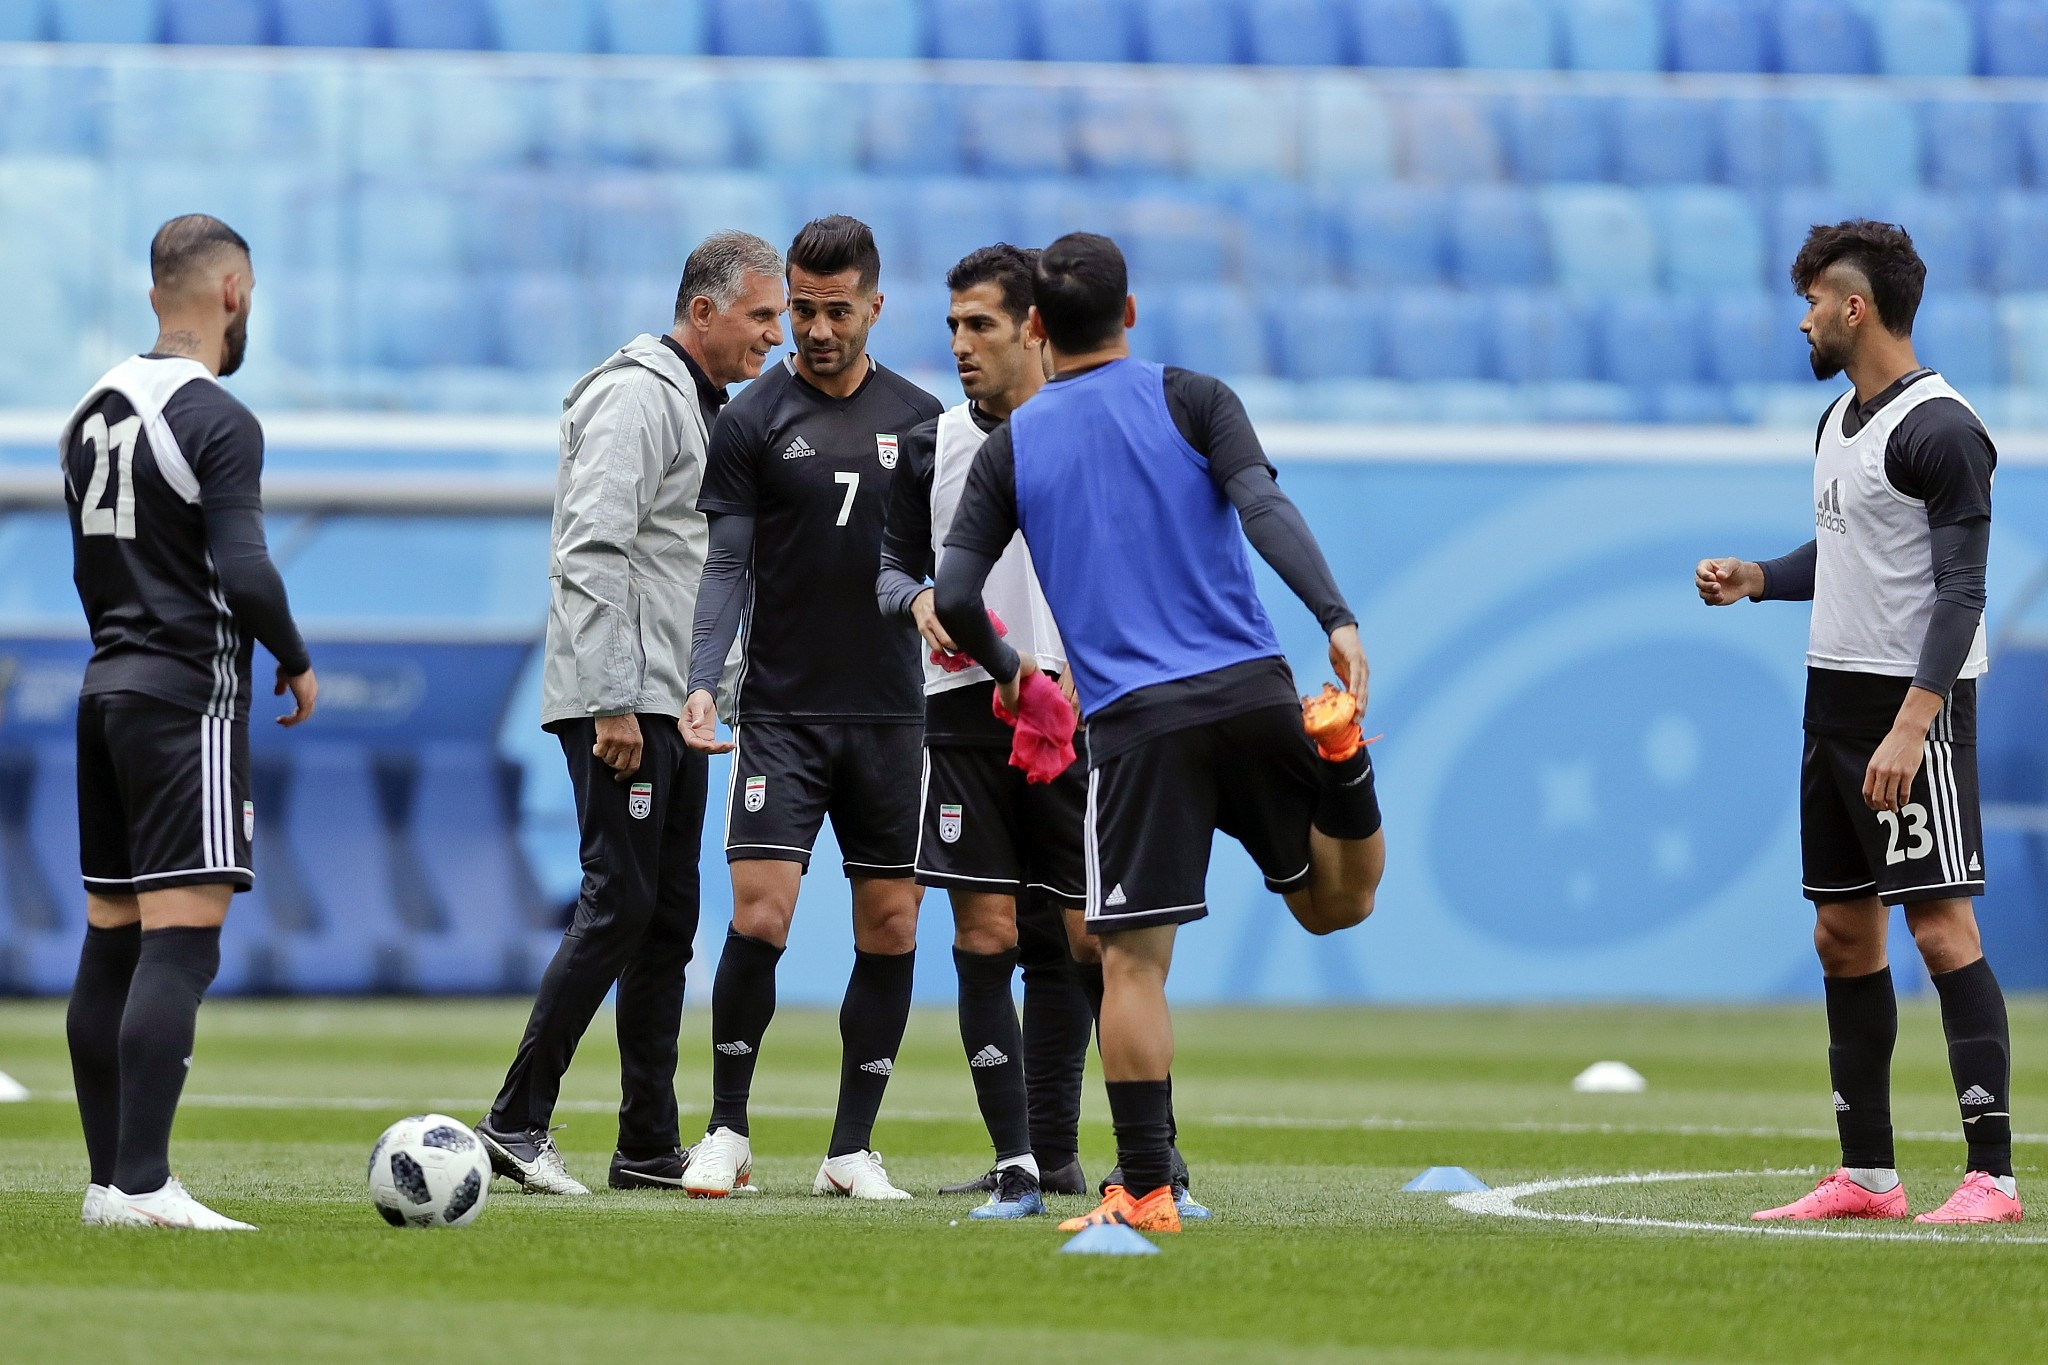 Problems mount for Iran at World Cup